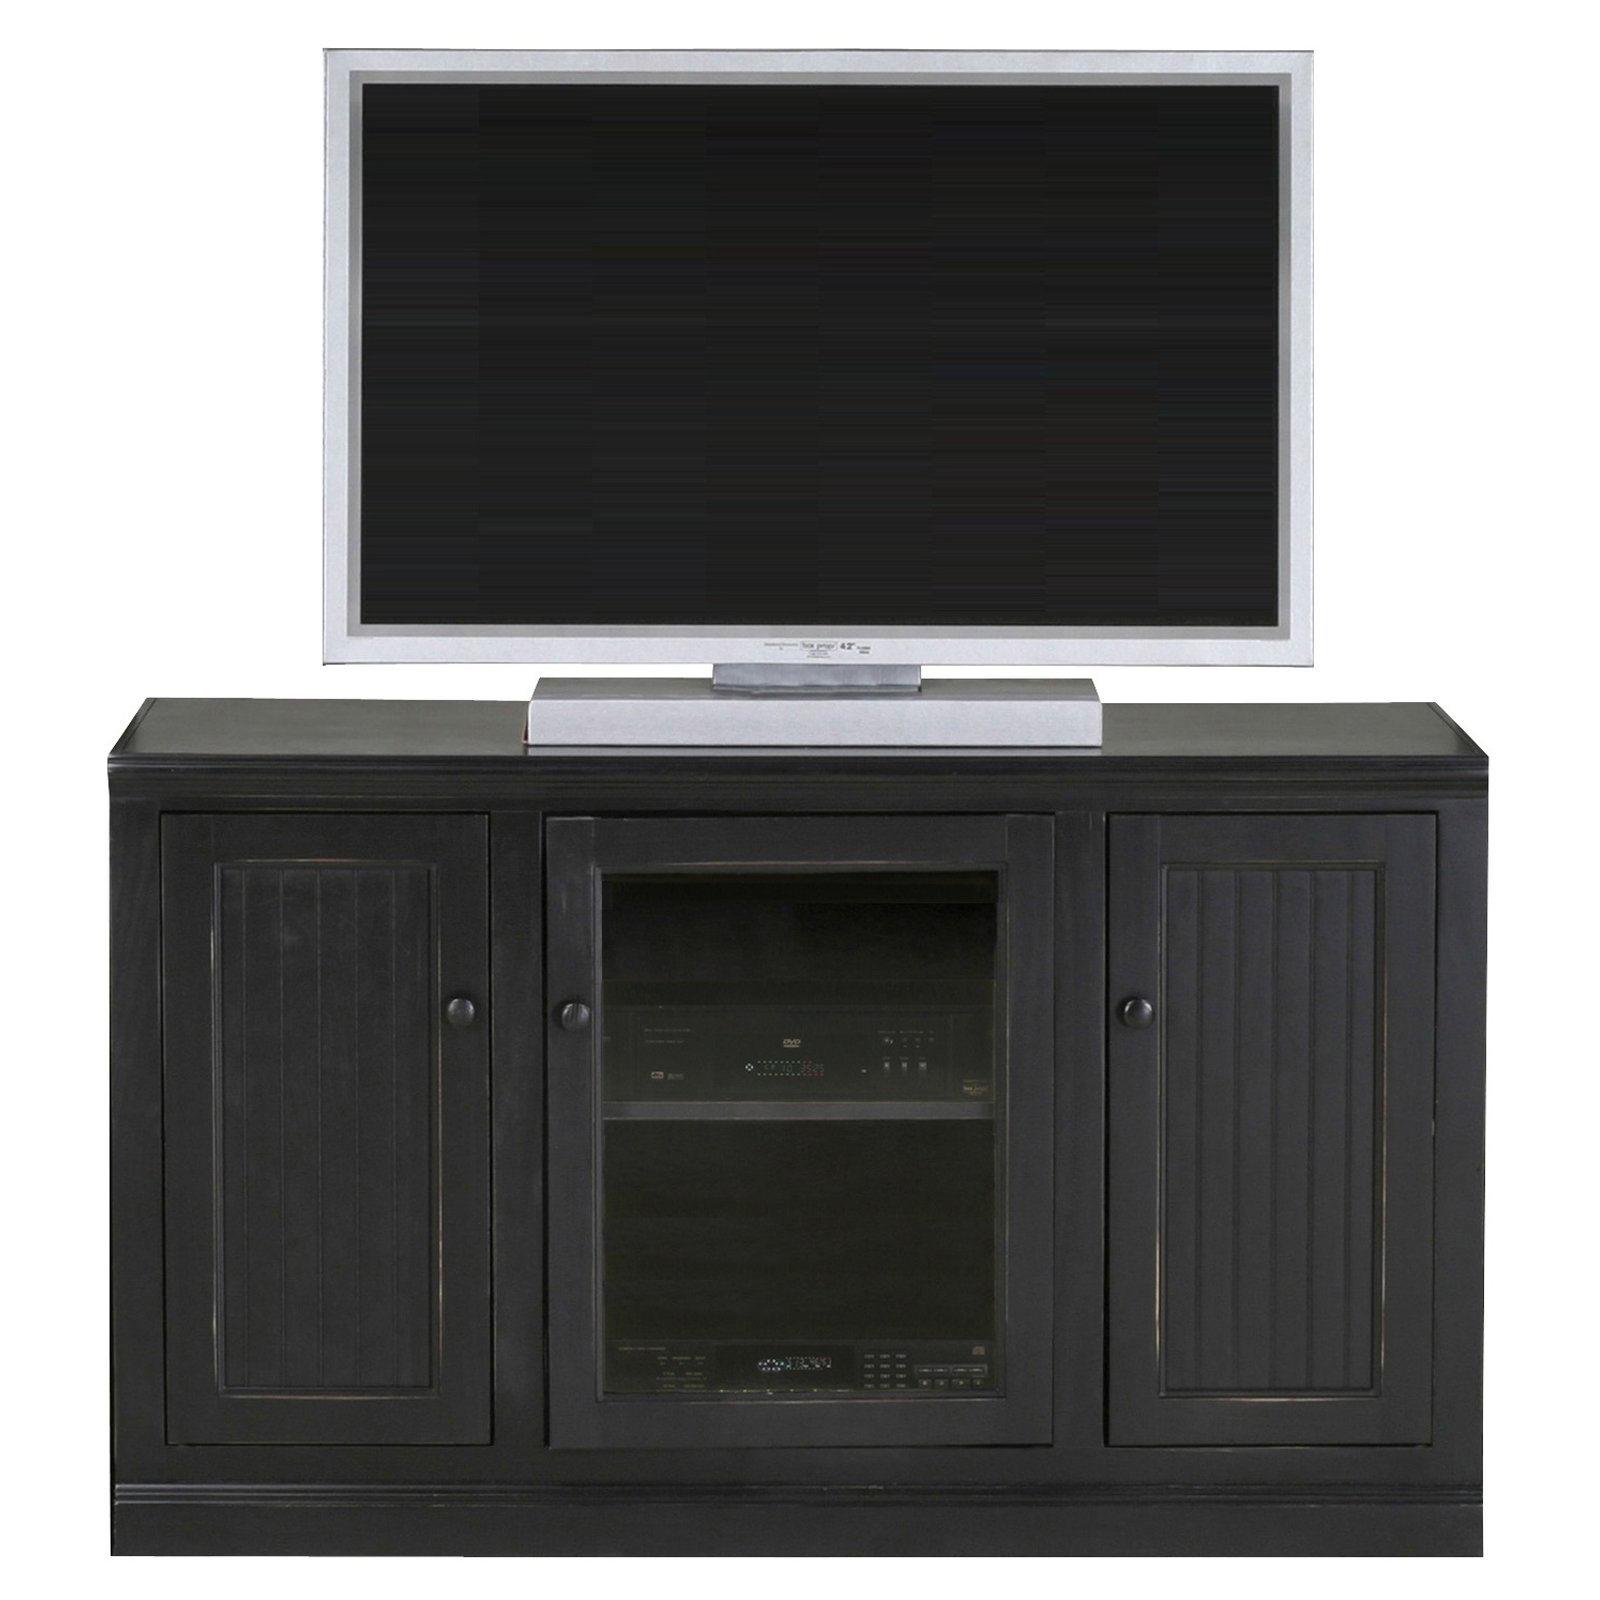 Eagle Furniture Coastal 55 in. Plain Glass Tall Entertainment Center